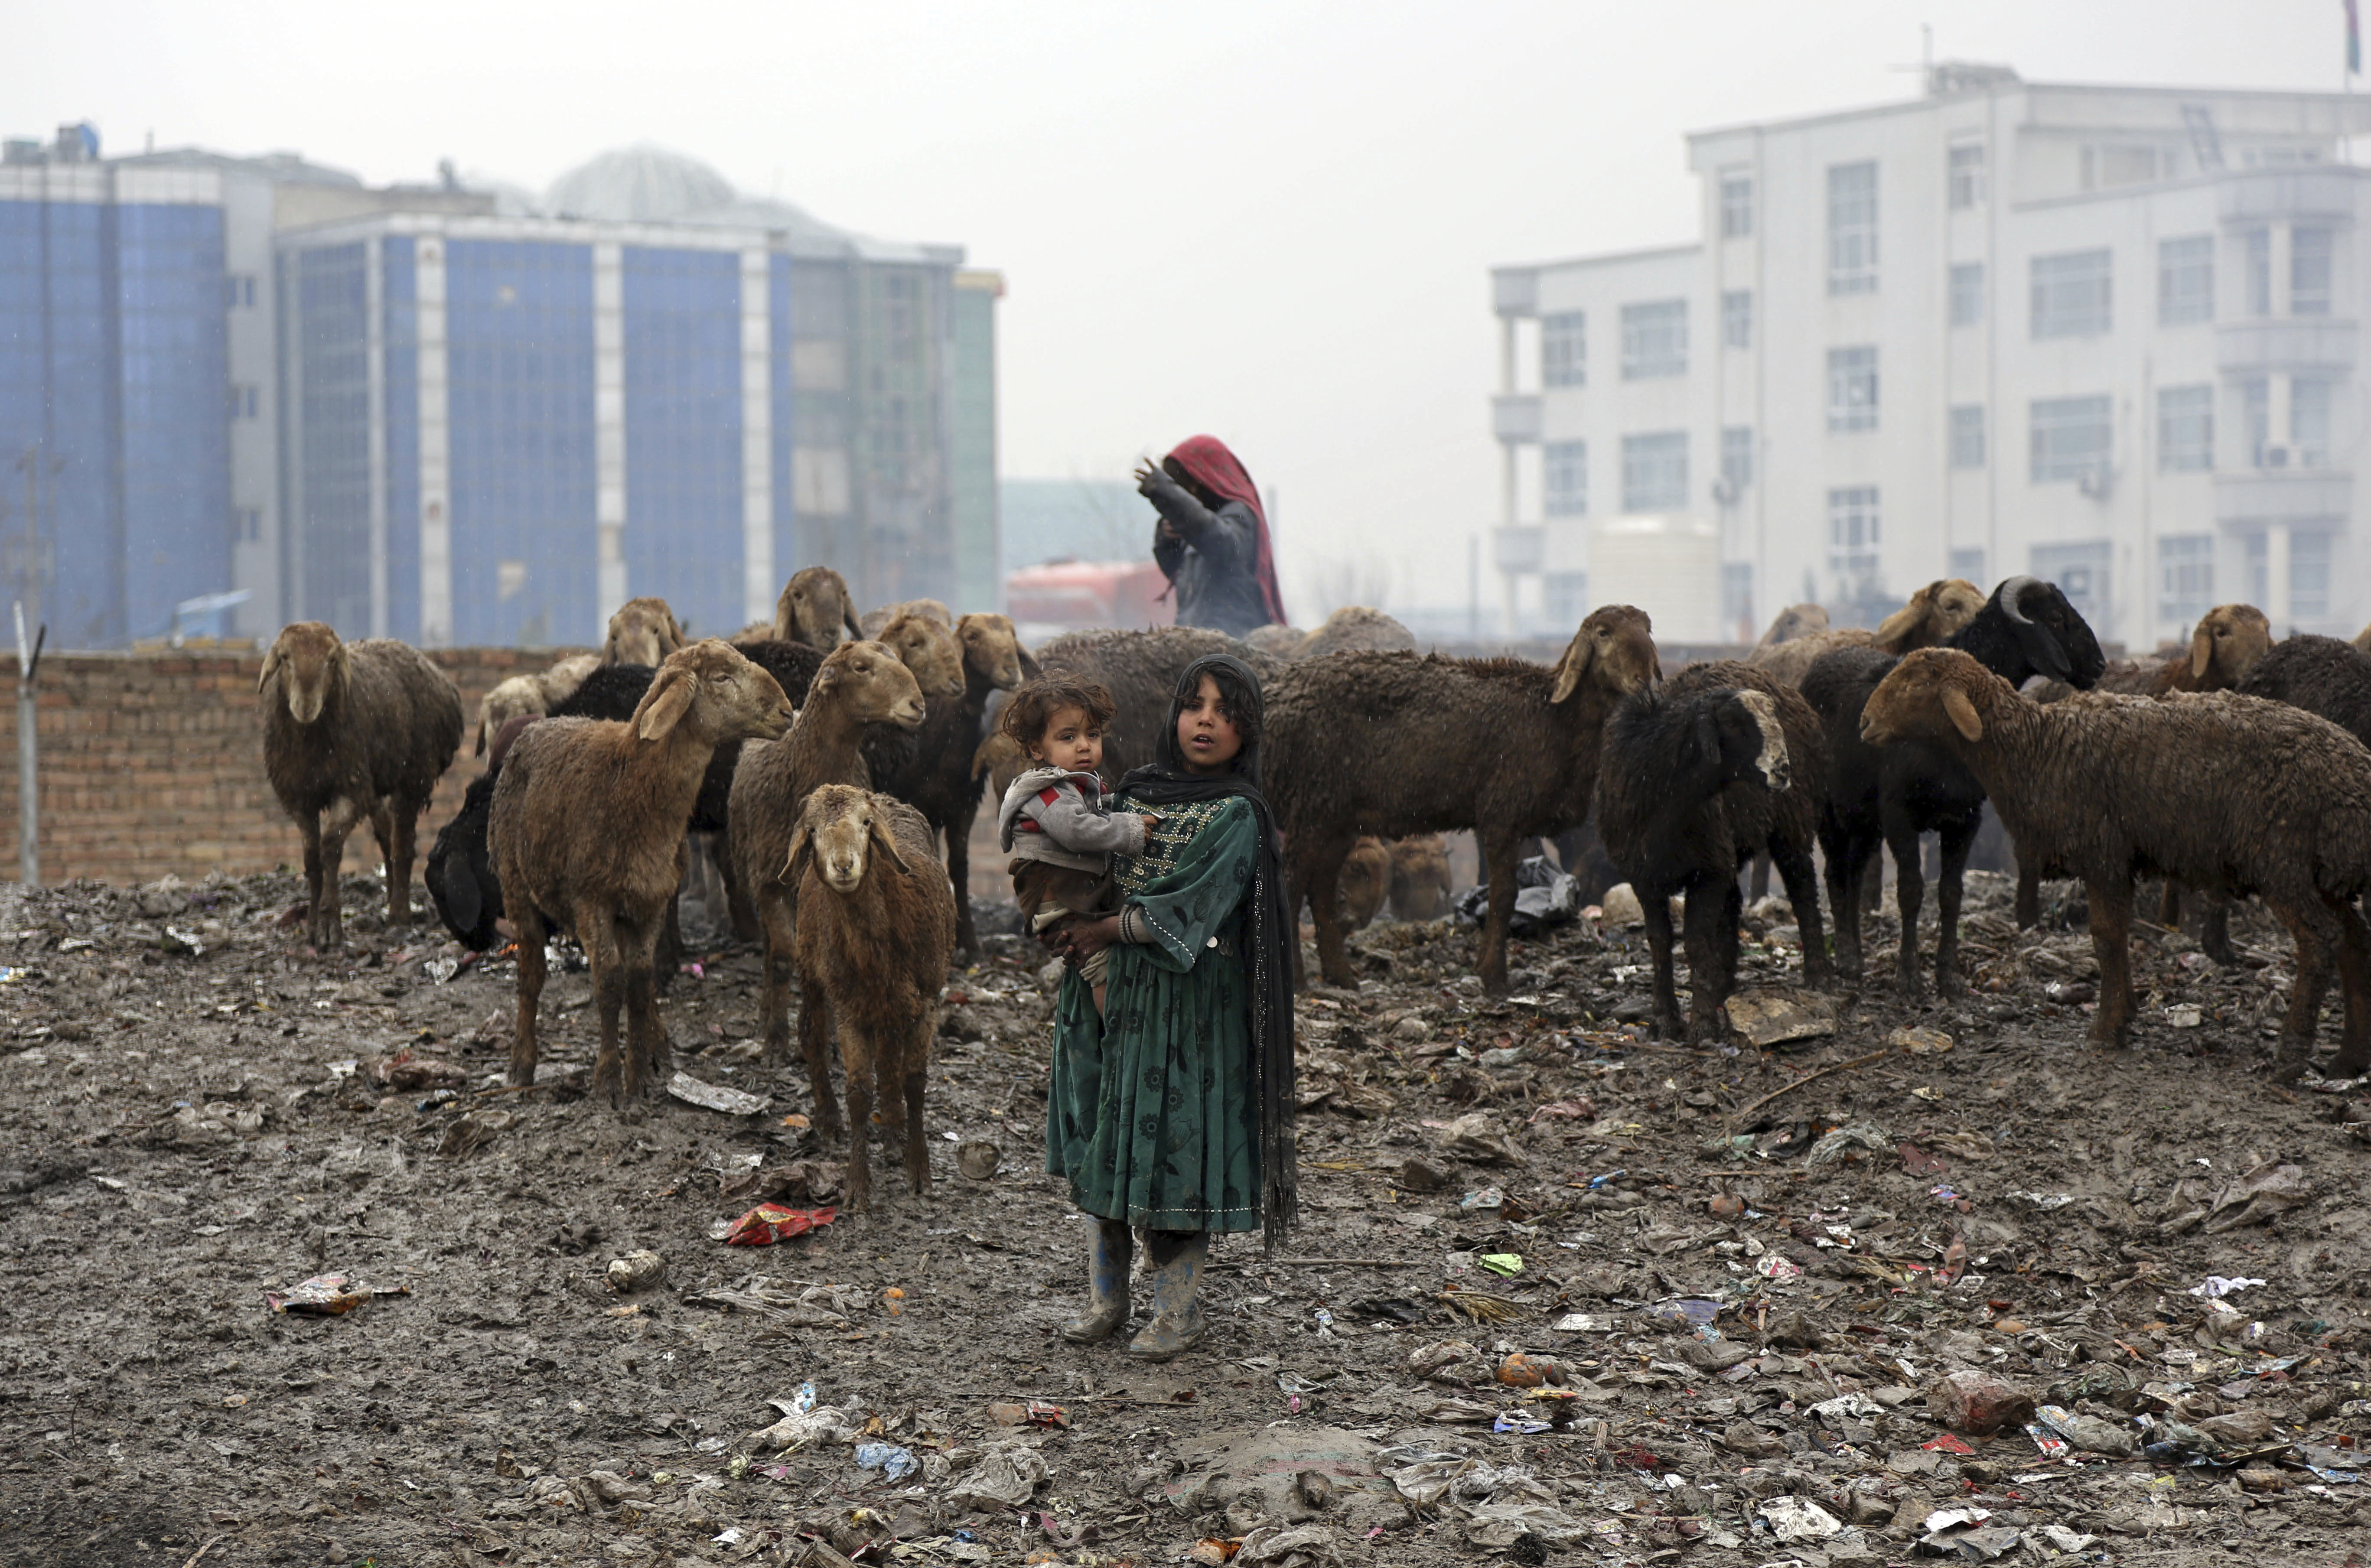 An Afghan girl holds her sister as she poses for a photograph near her sheep in Kabul, Monday, Feb. 12, 2018. (AP Photo/Rahmat Gul)